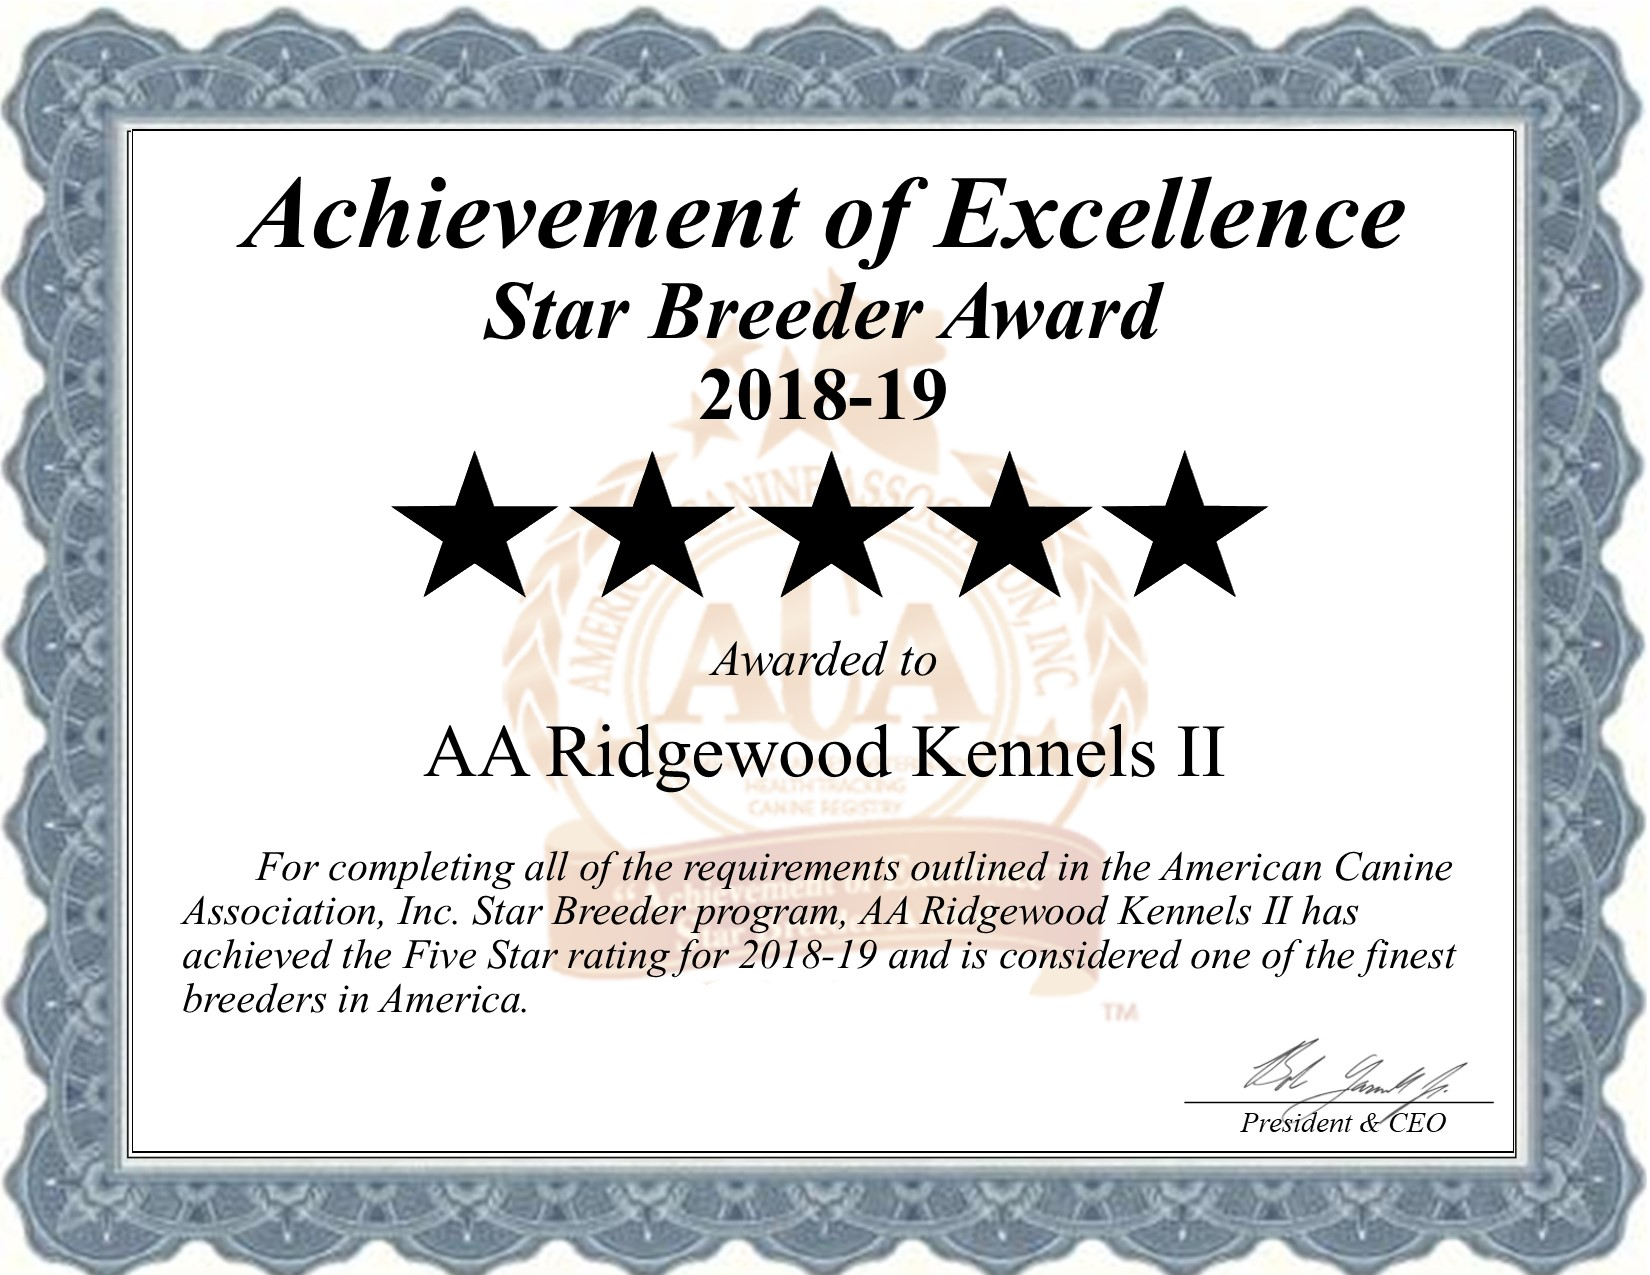 AA, Ridgewood, Kennels, II, certificate, dog, breeder, aa-ridgewood-kennels-ii, dog-breeder, gap, shrewsbury, pa, pennsylvania, usda, puppy, puppies, ACA, ICA, star, 5-star, ridge, wood, kennel